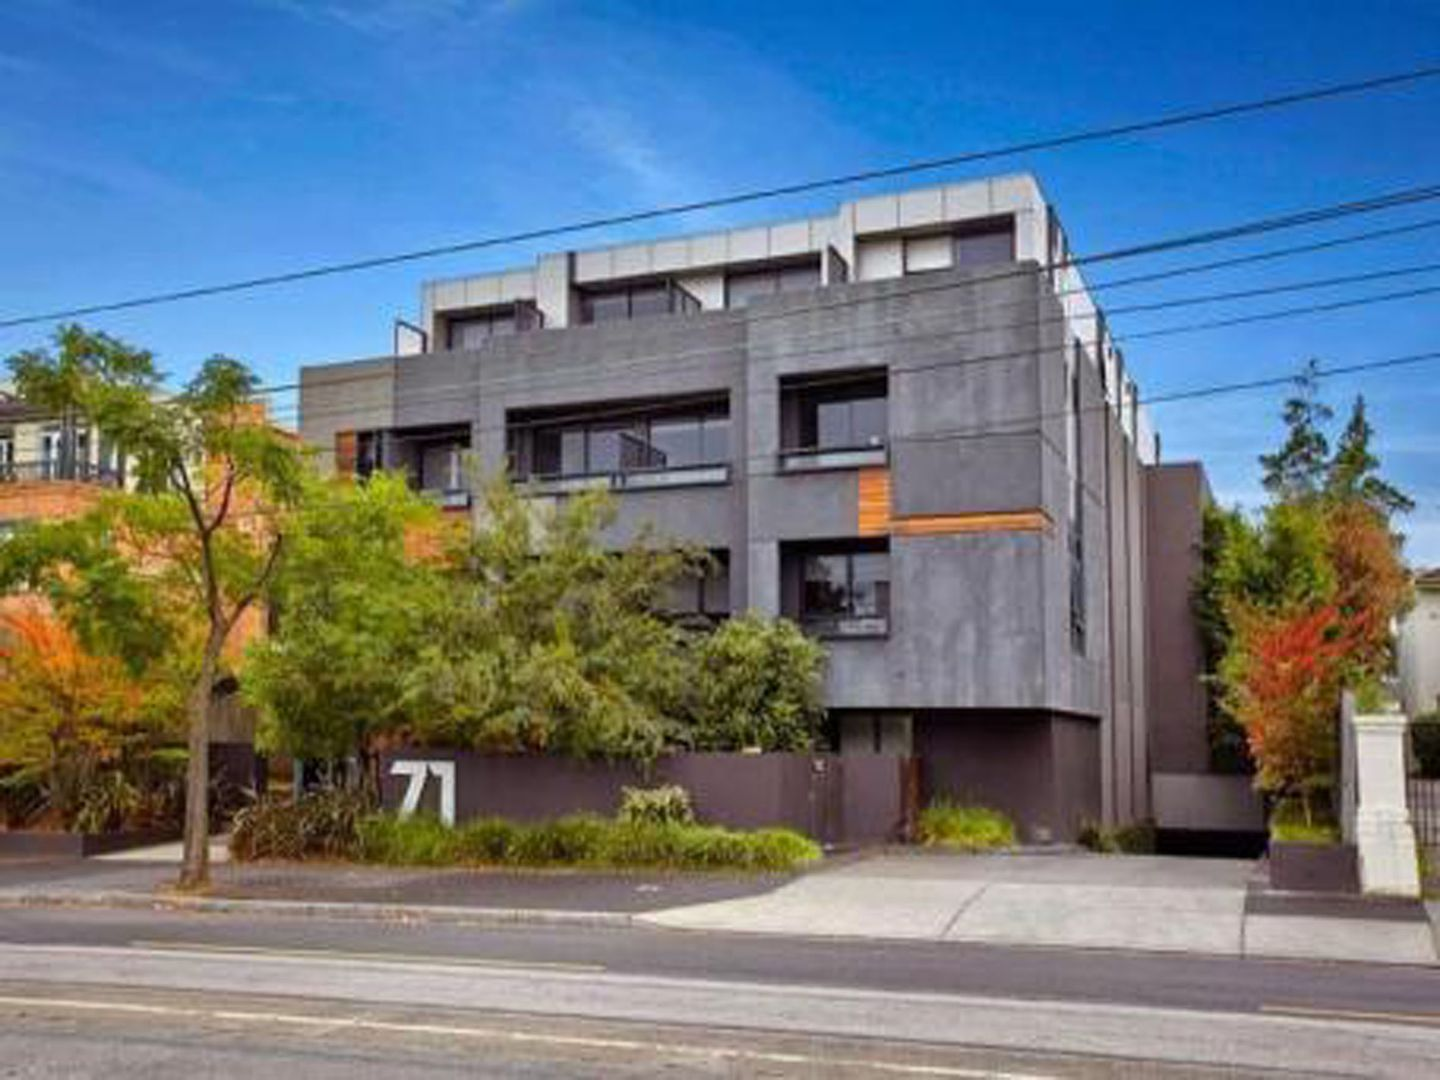 105A/71 Riversdale Road, Hawthorn VIC 3122, Image 0